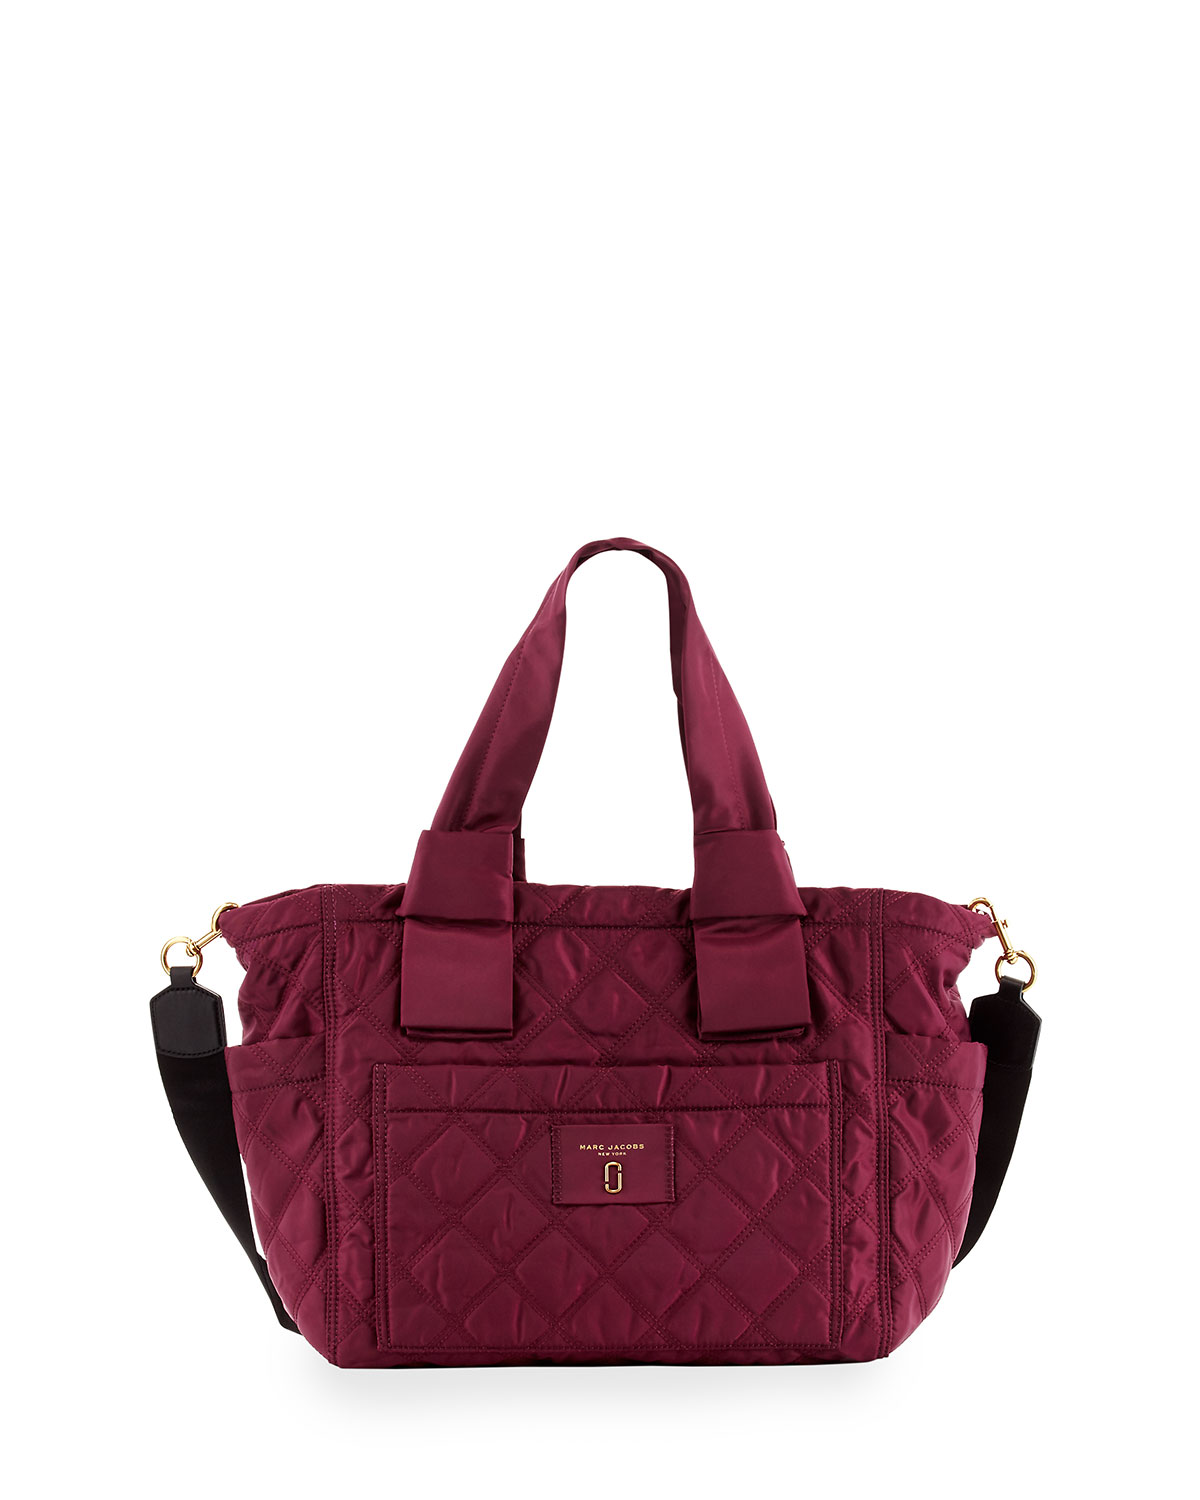 6283969b7cba Marc Jacobs Quilted Nylon Baby Bag